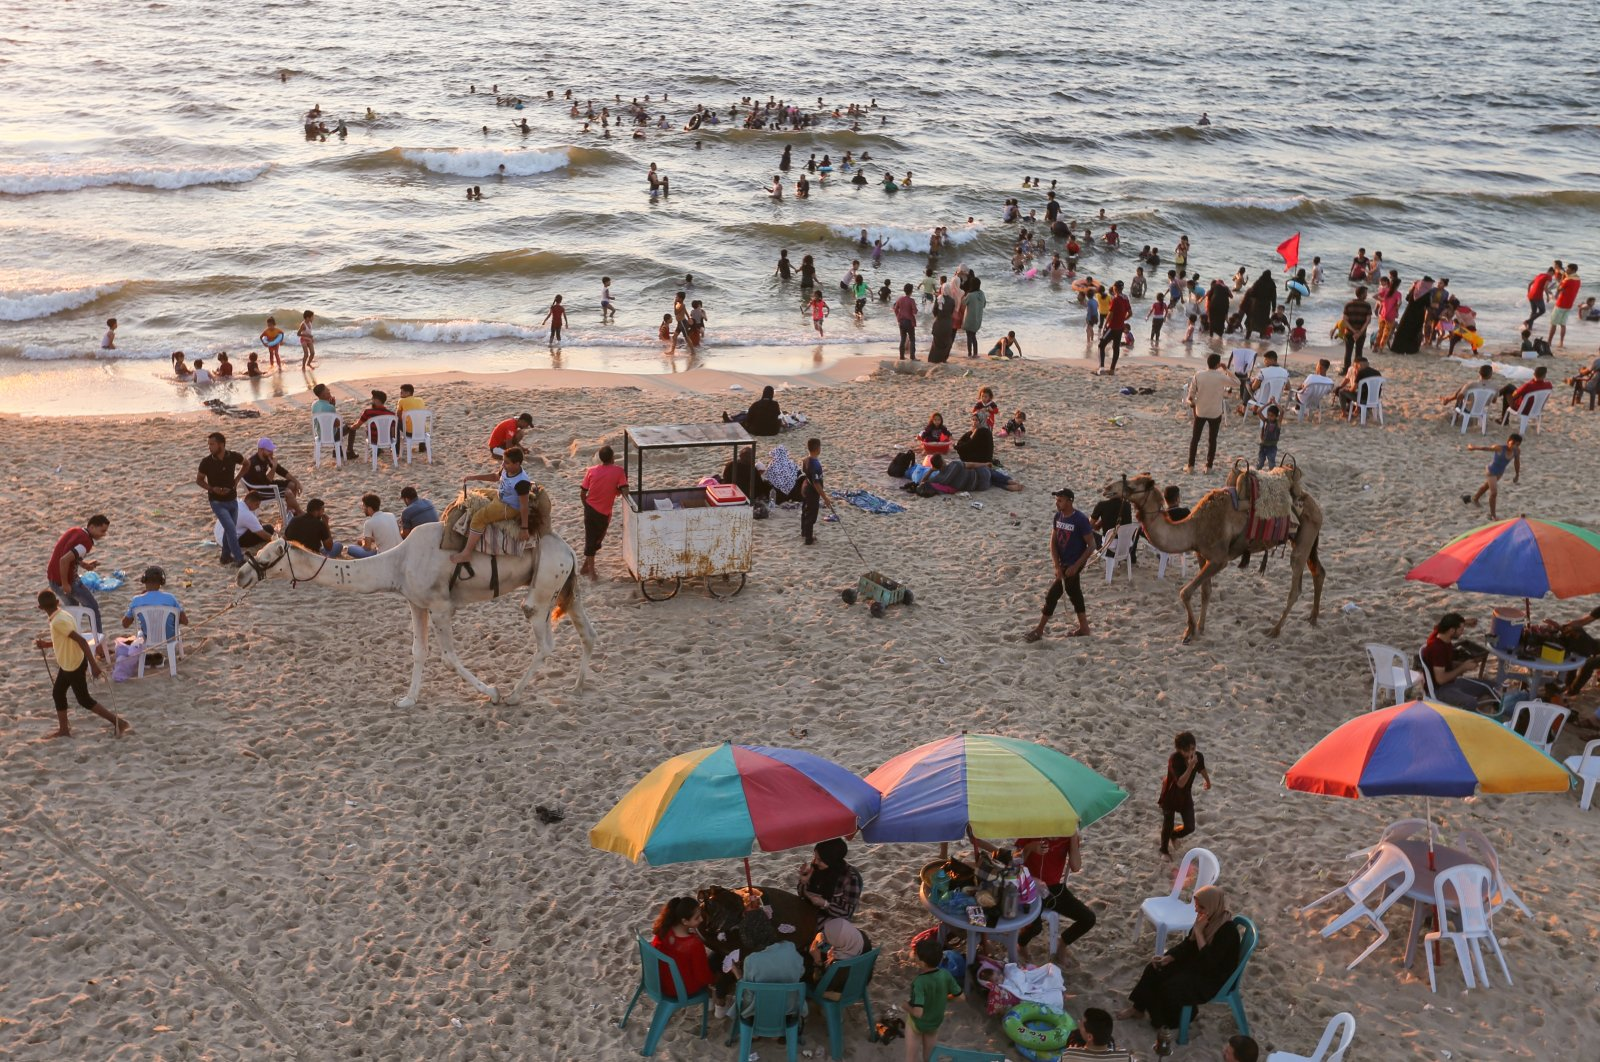 Palestinians spend time at a beach in Gaza, Palestine, July 8, 2021. (REUTERS)